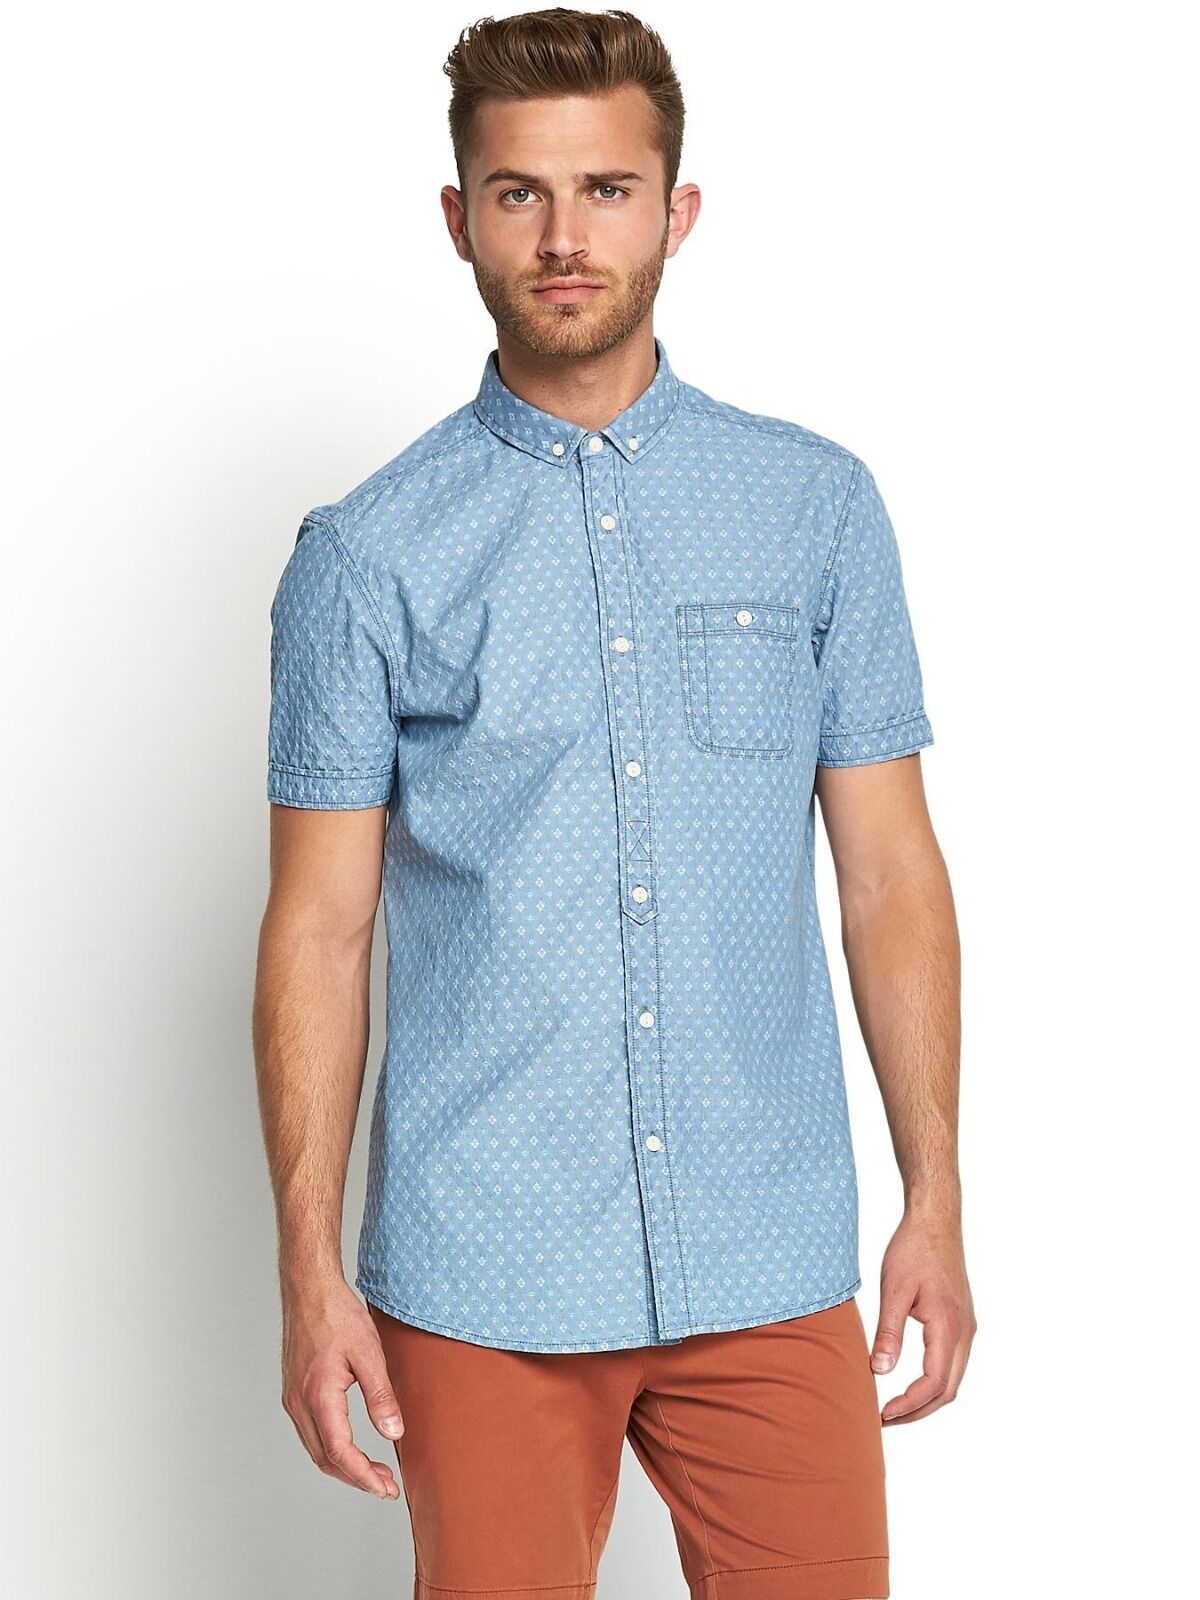 Goodsouls Hommes Chemise à manches courtes, S, taille S, courtes, Chambray Bleached Wash 6a083a